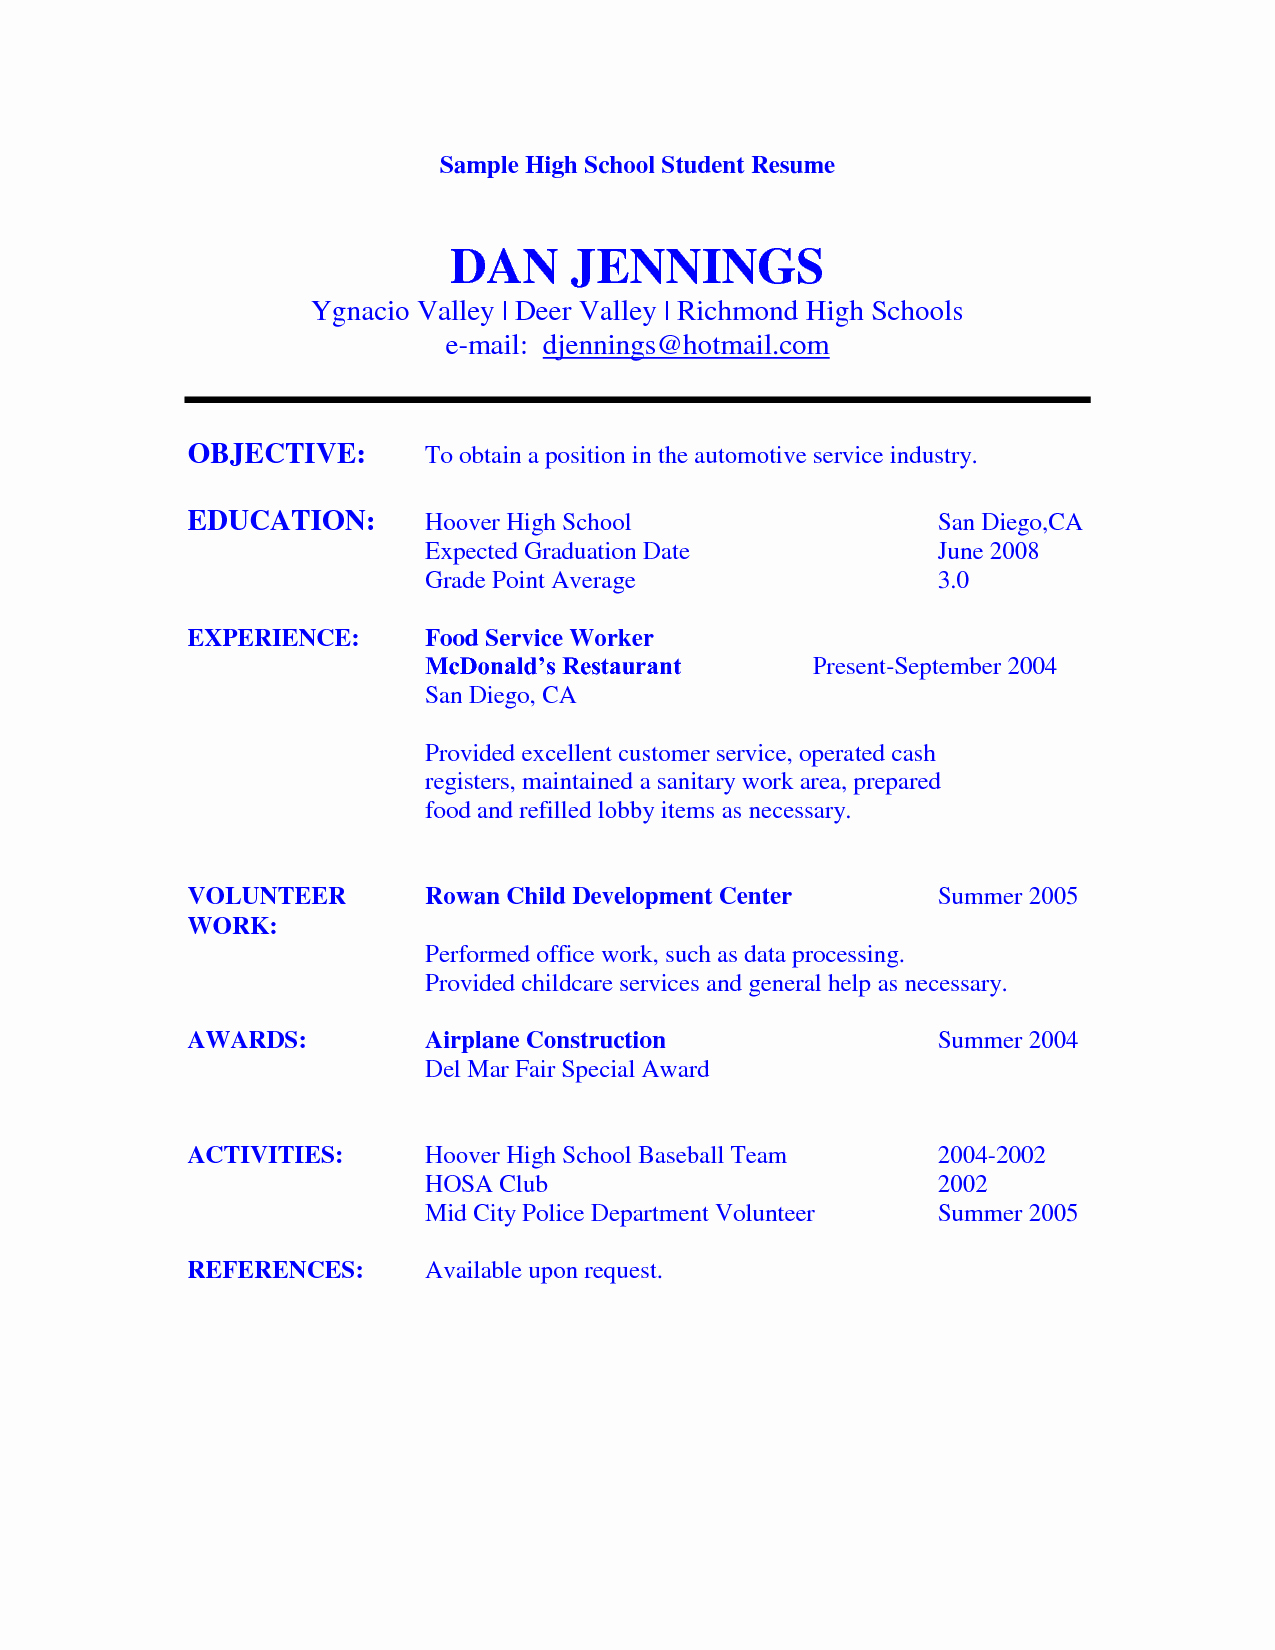 Sample Resume Objective for College Student